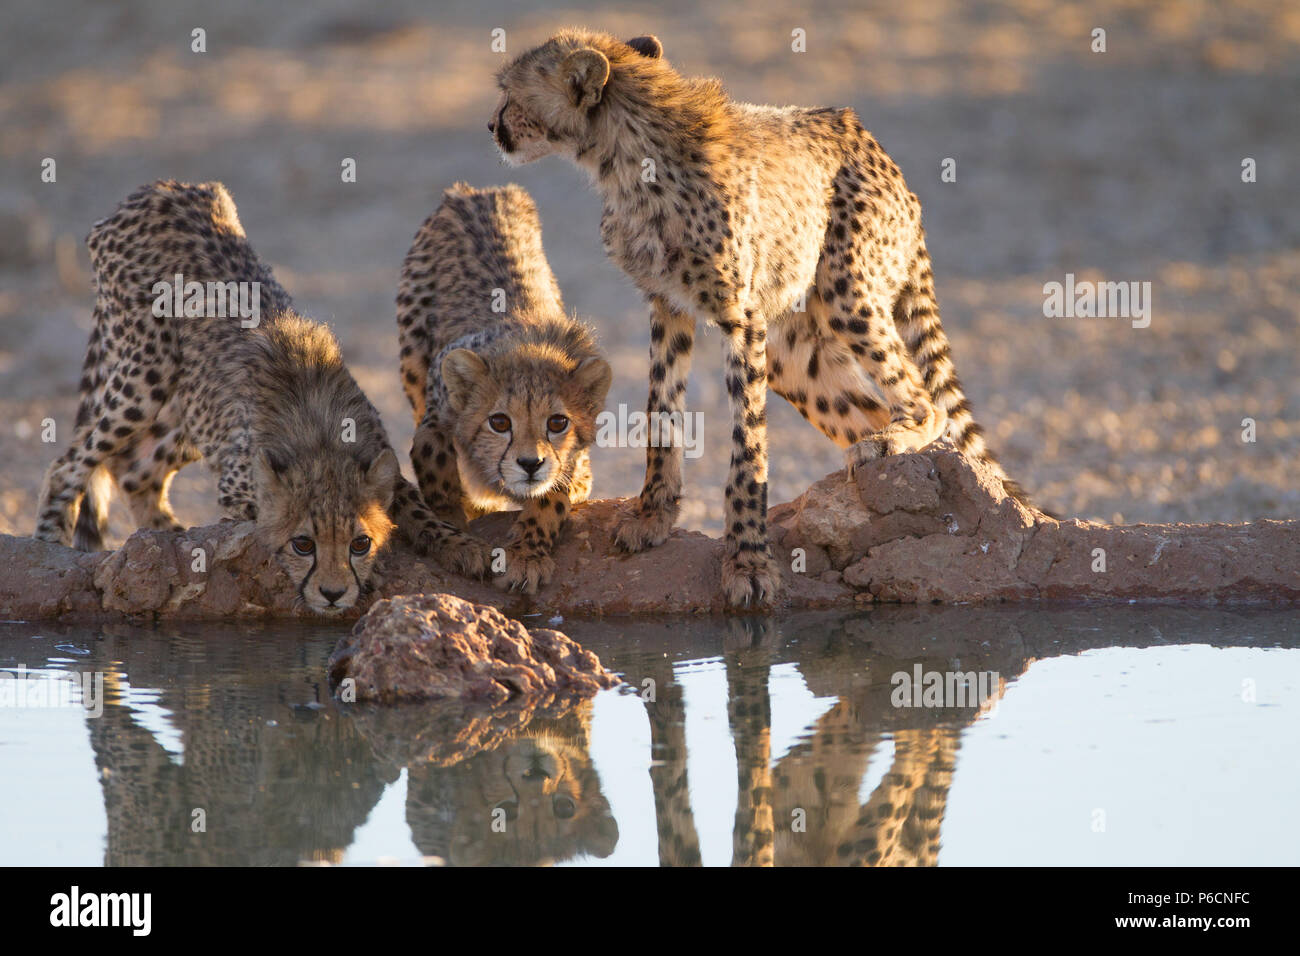 Cheetah Cubs drinking water from a Pond Stock Photo